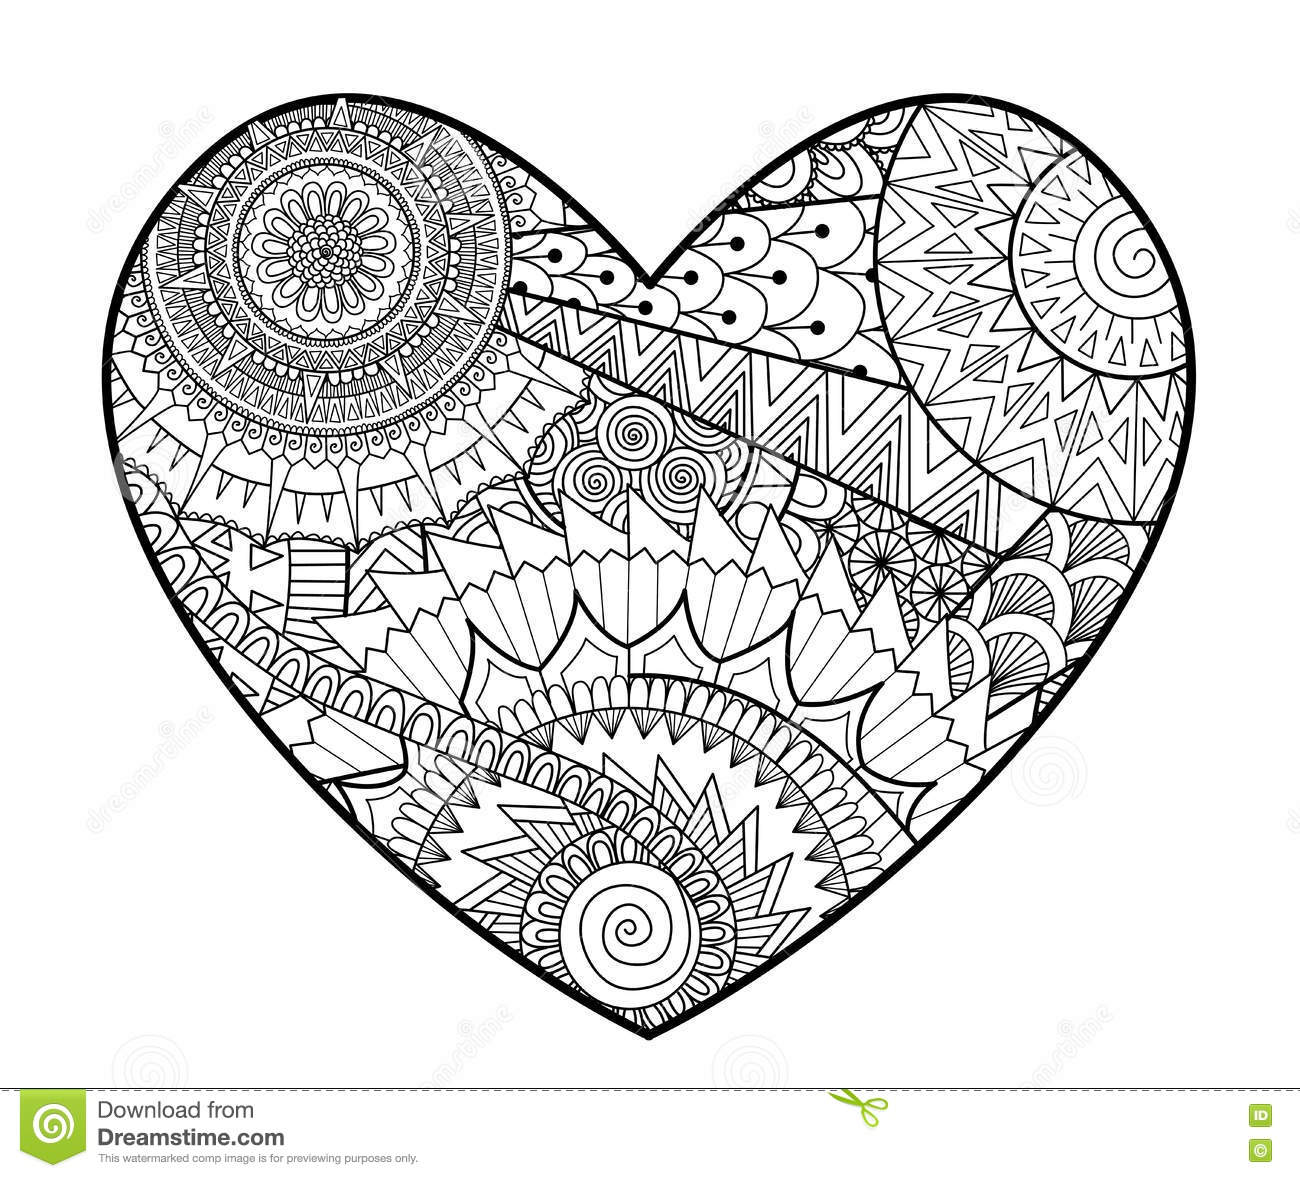 heart shape coloring pages - zendoodle in heart shape for coloring books for adult